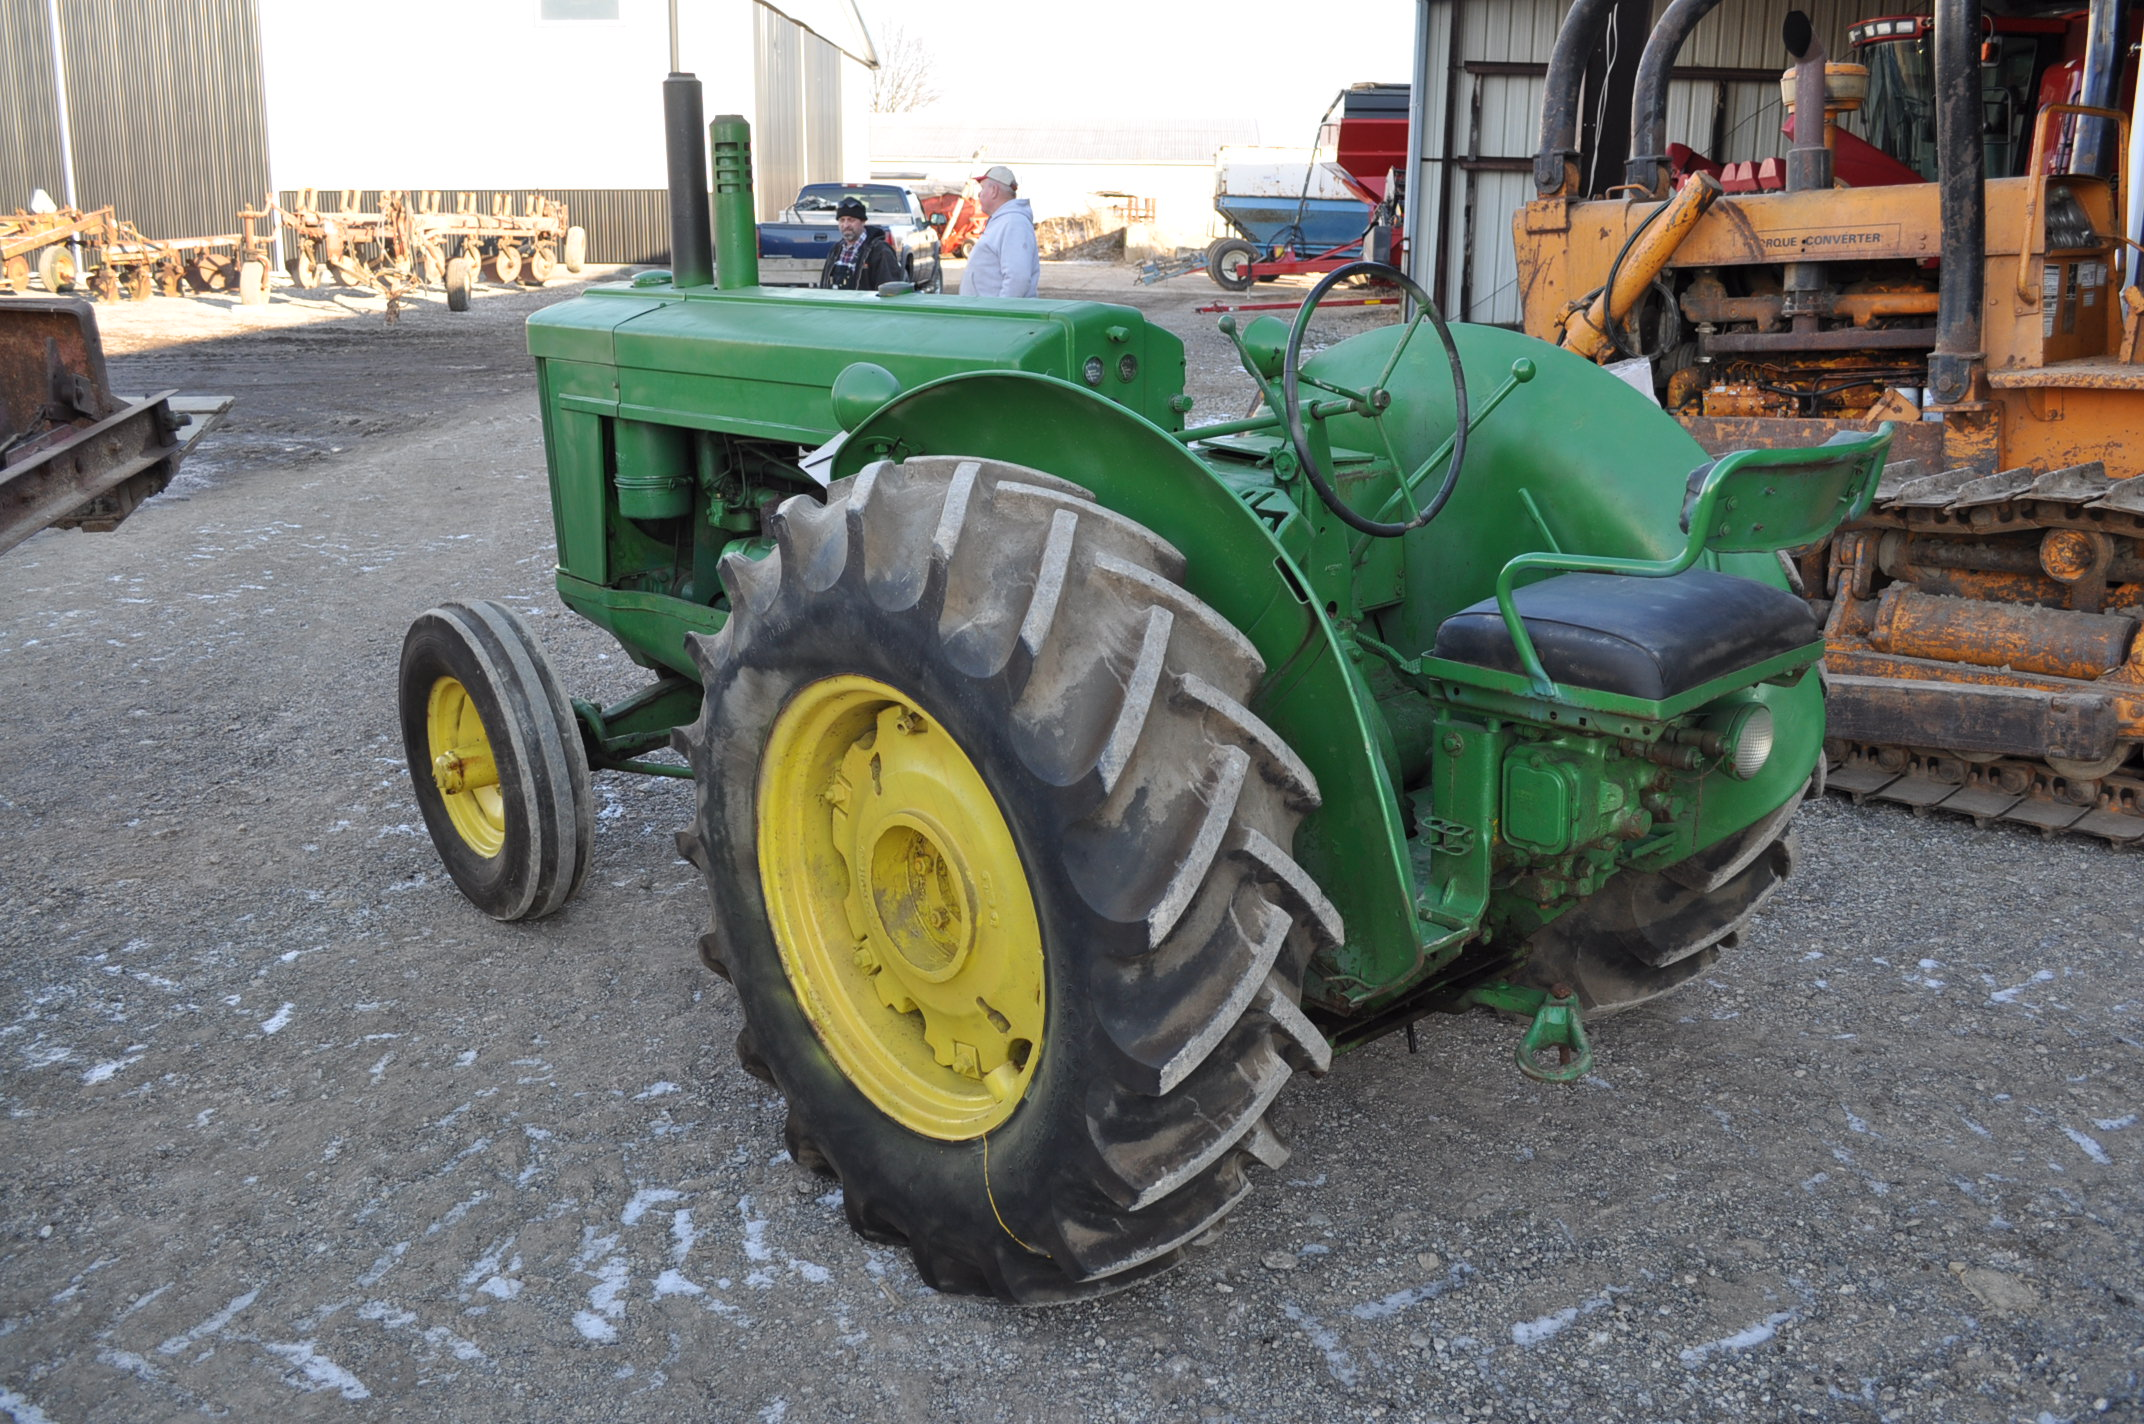 John Deere AR tractor, styled, 14.9-26 rear, 6.50-16 front, wide front, fenders, gasoline, single - Image 4 of 12